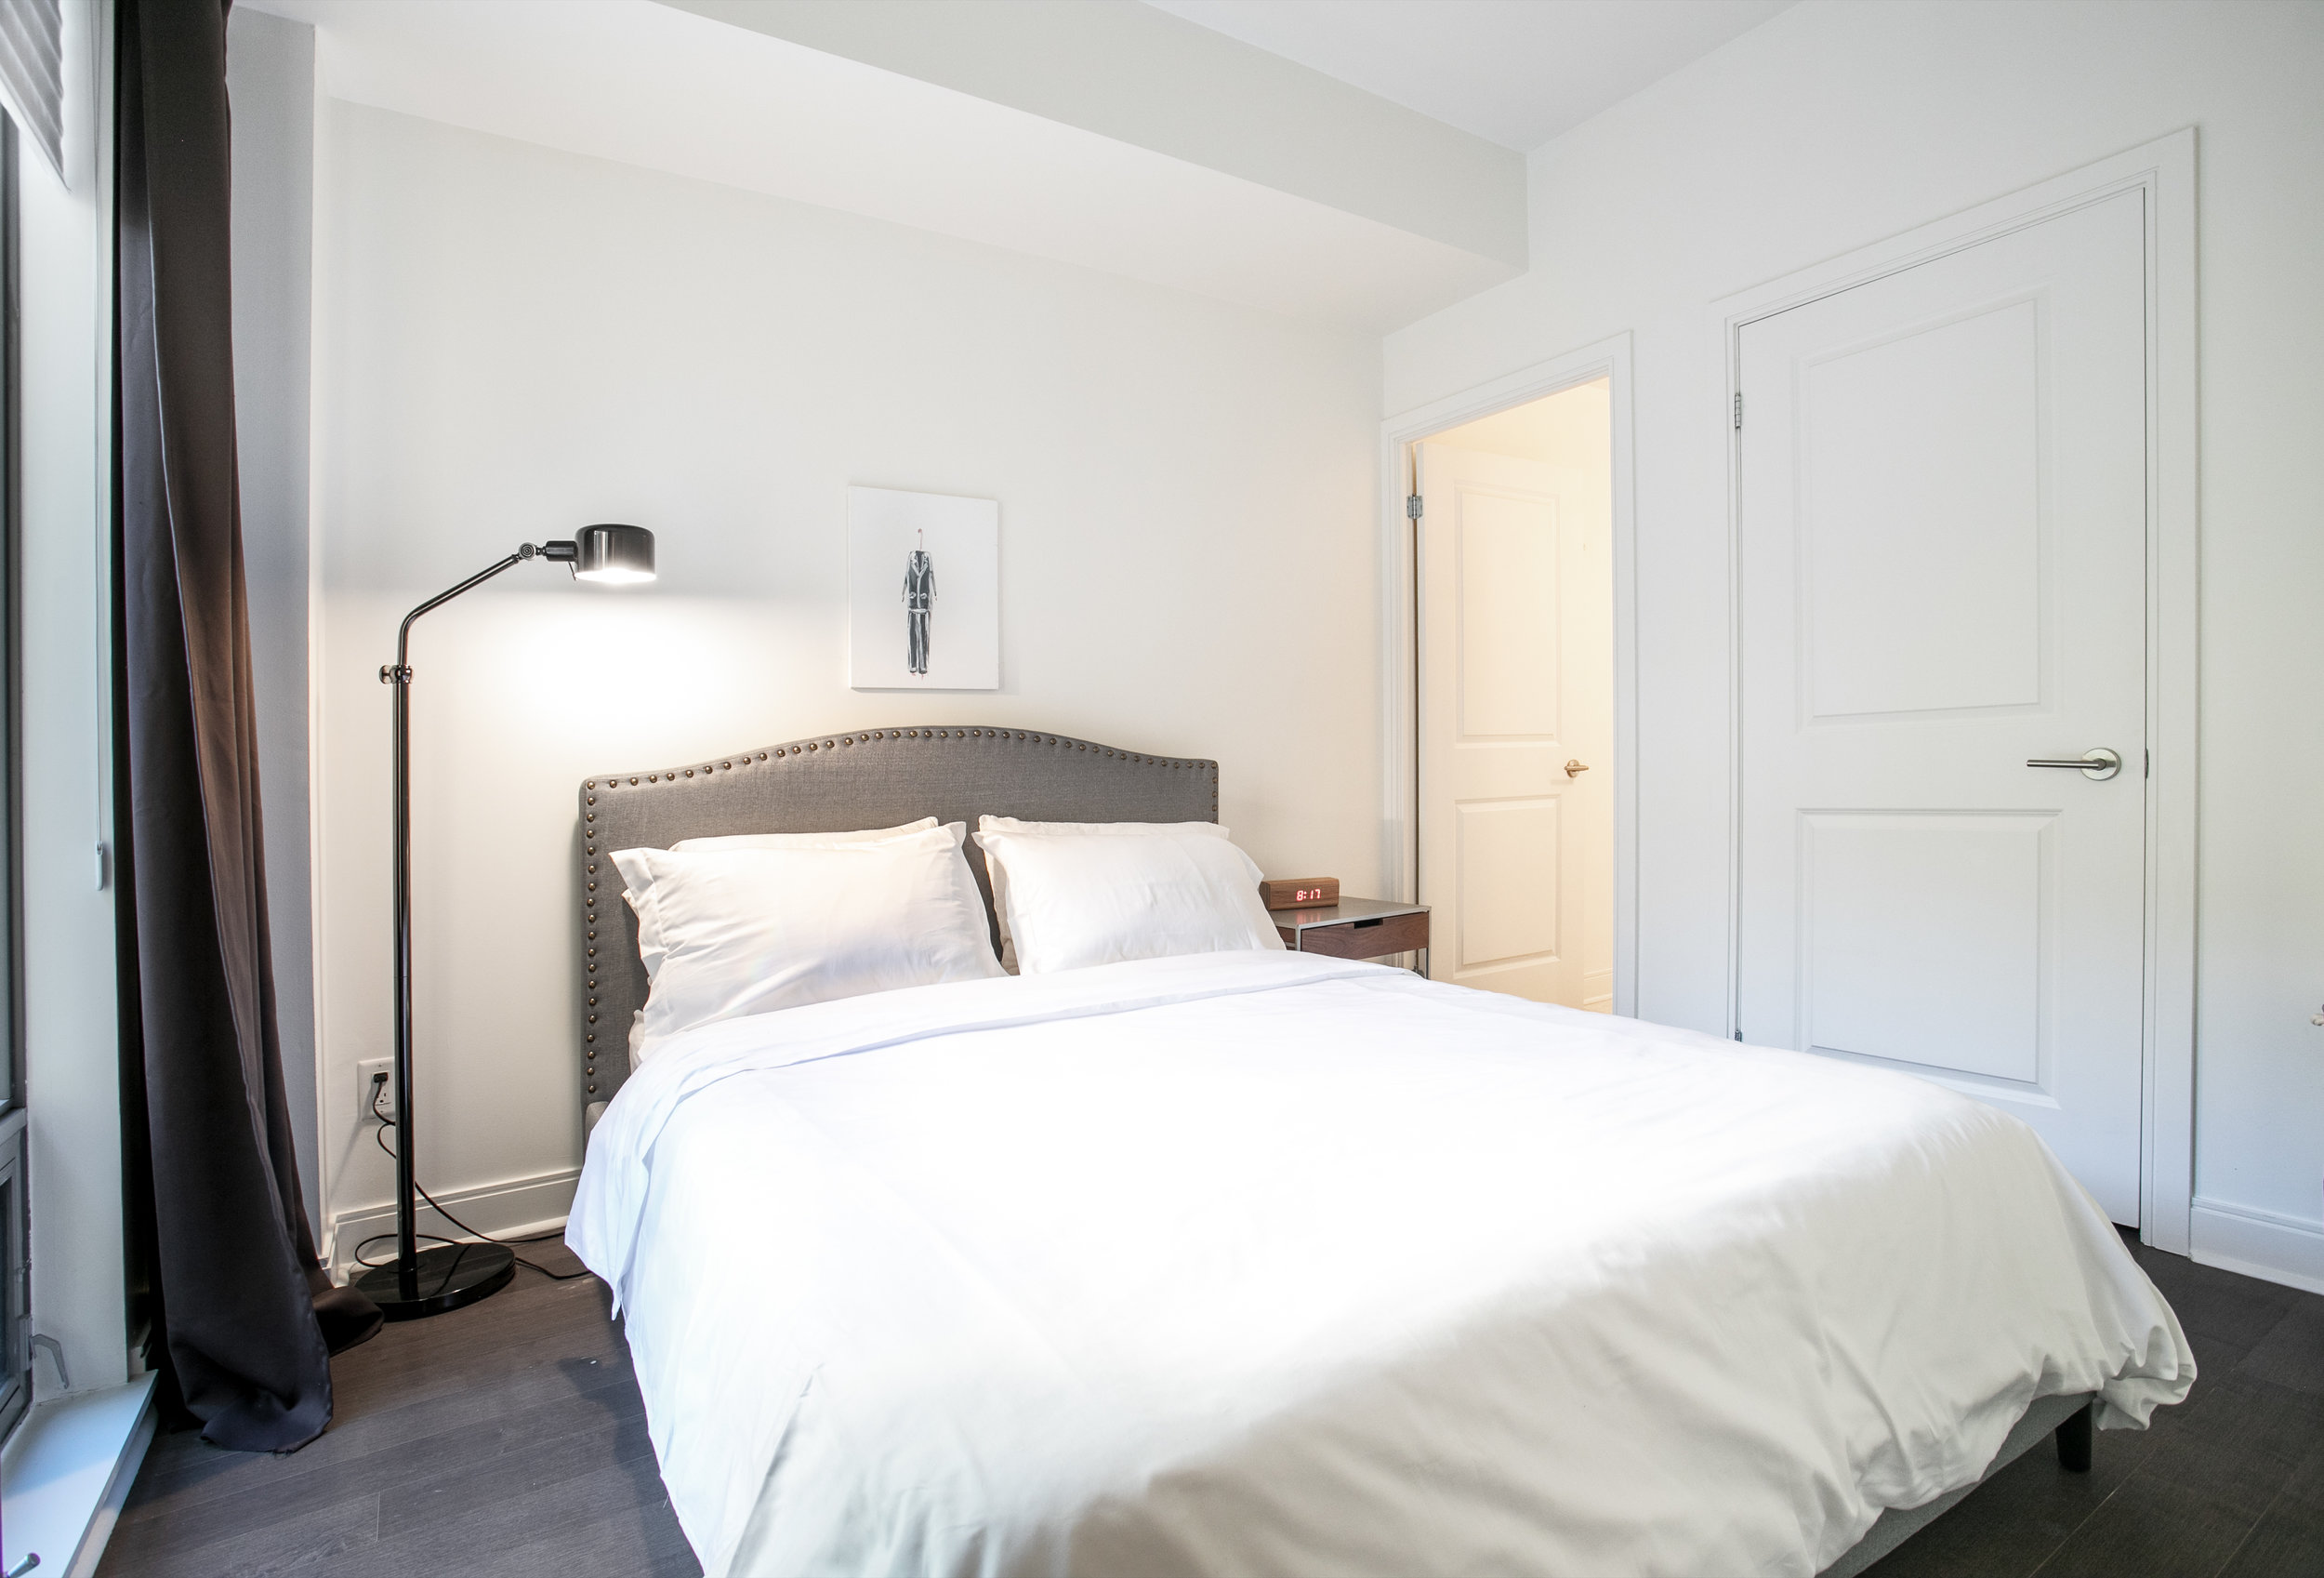 Copy of Copy of Copy of short term furnished rentals toronto Yorkville bedroom bed